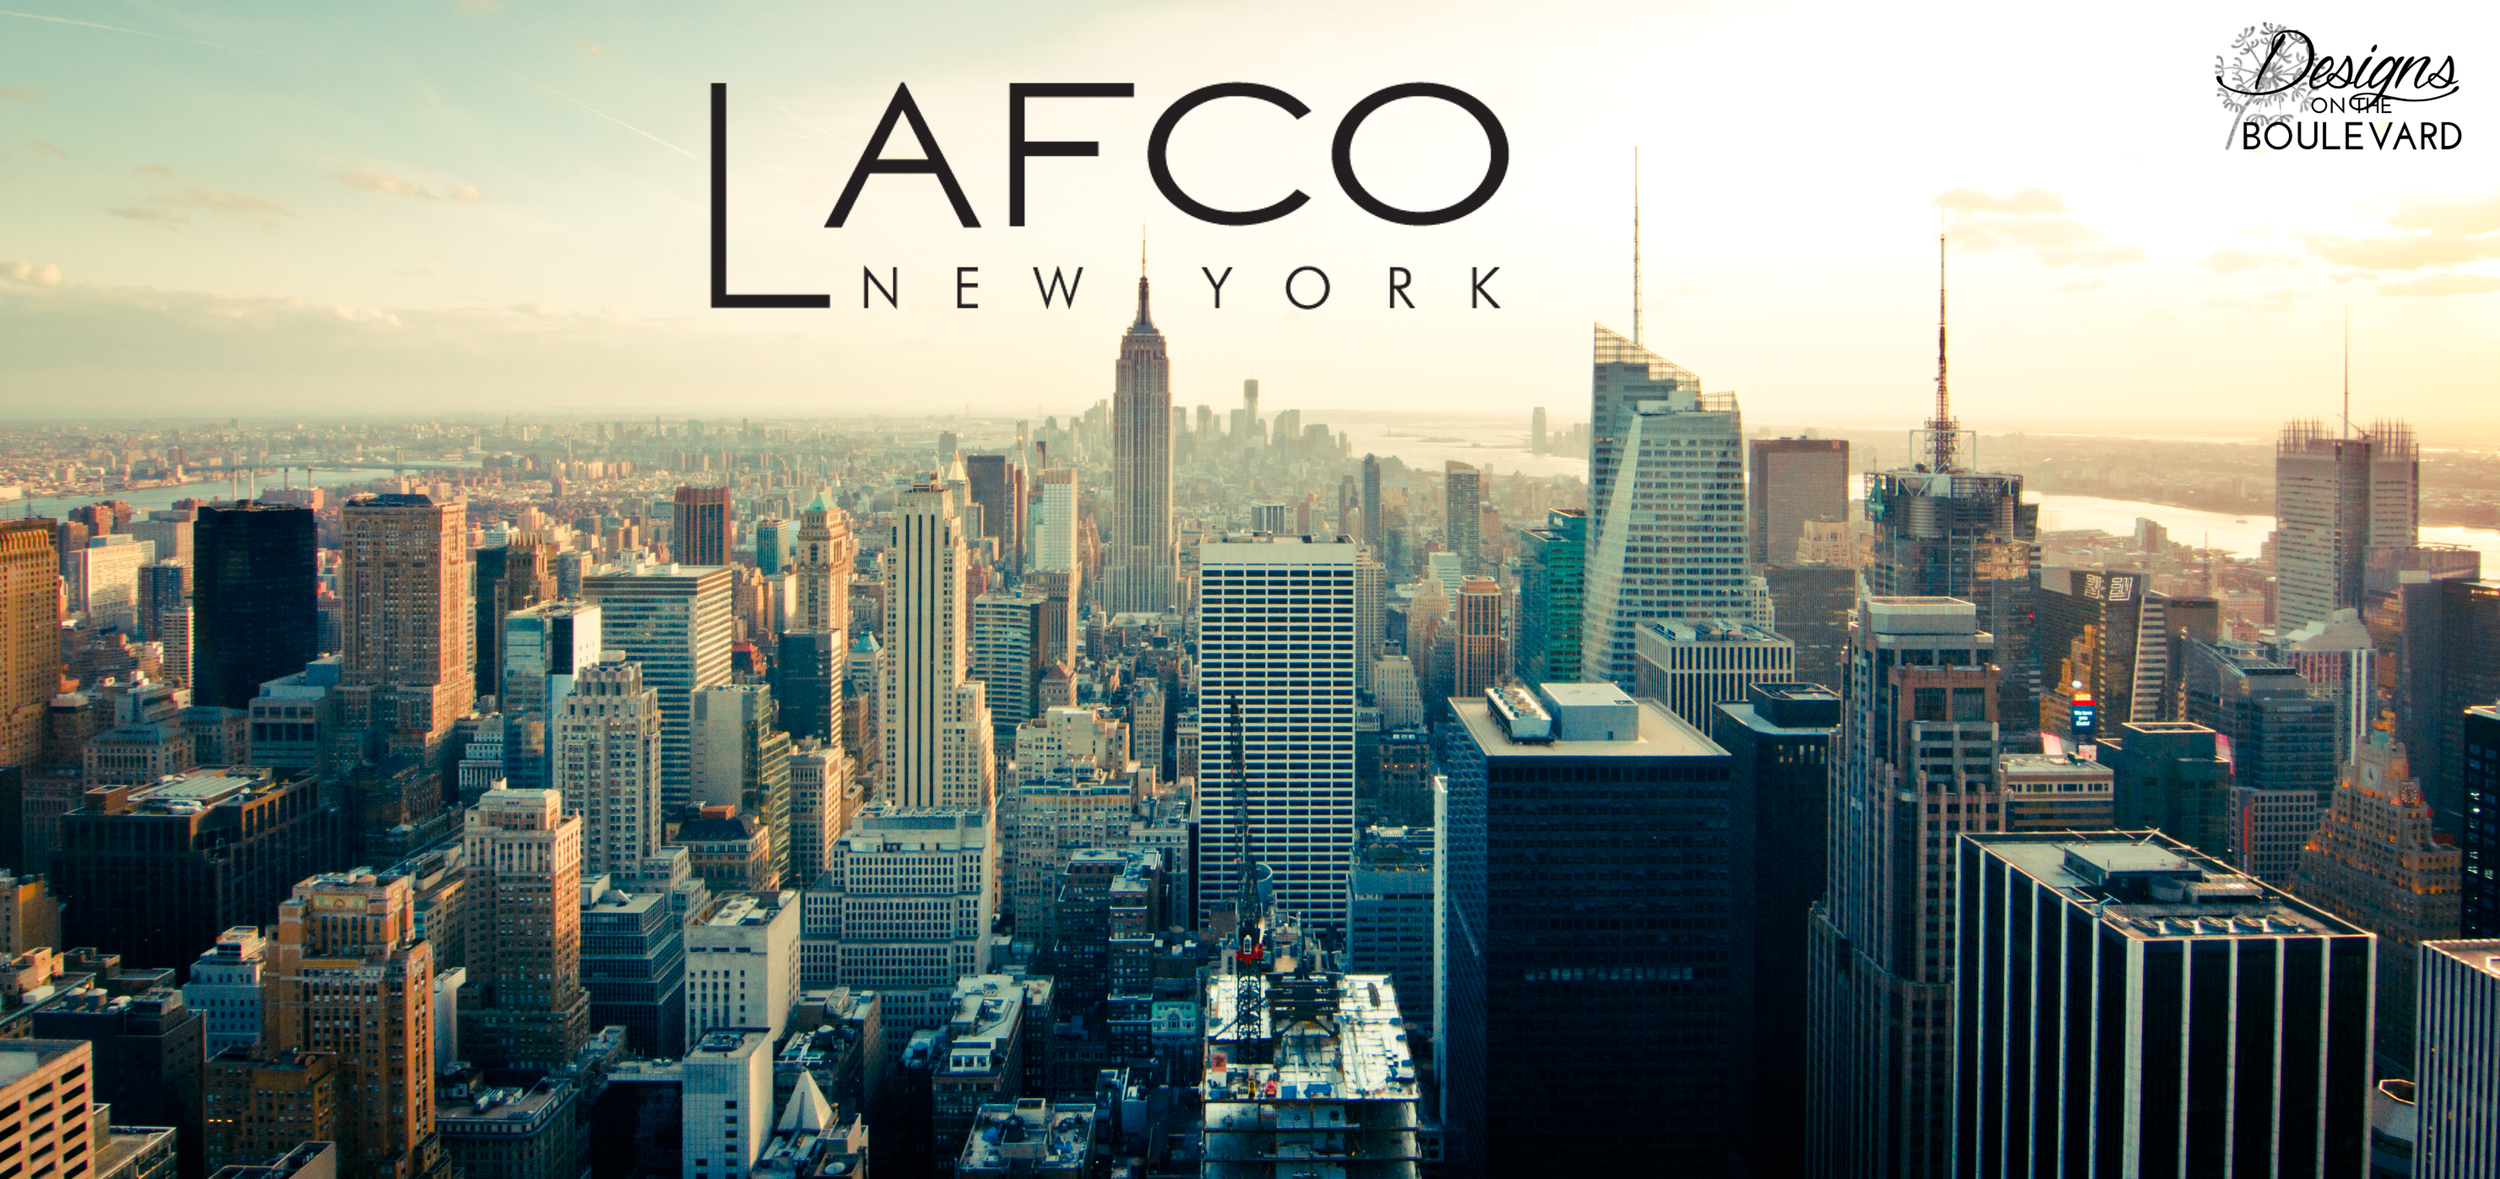 NYC Designs welcomes lafco1